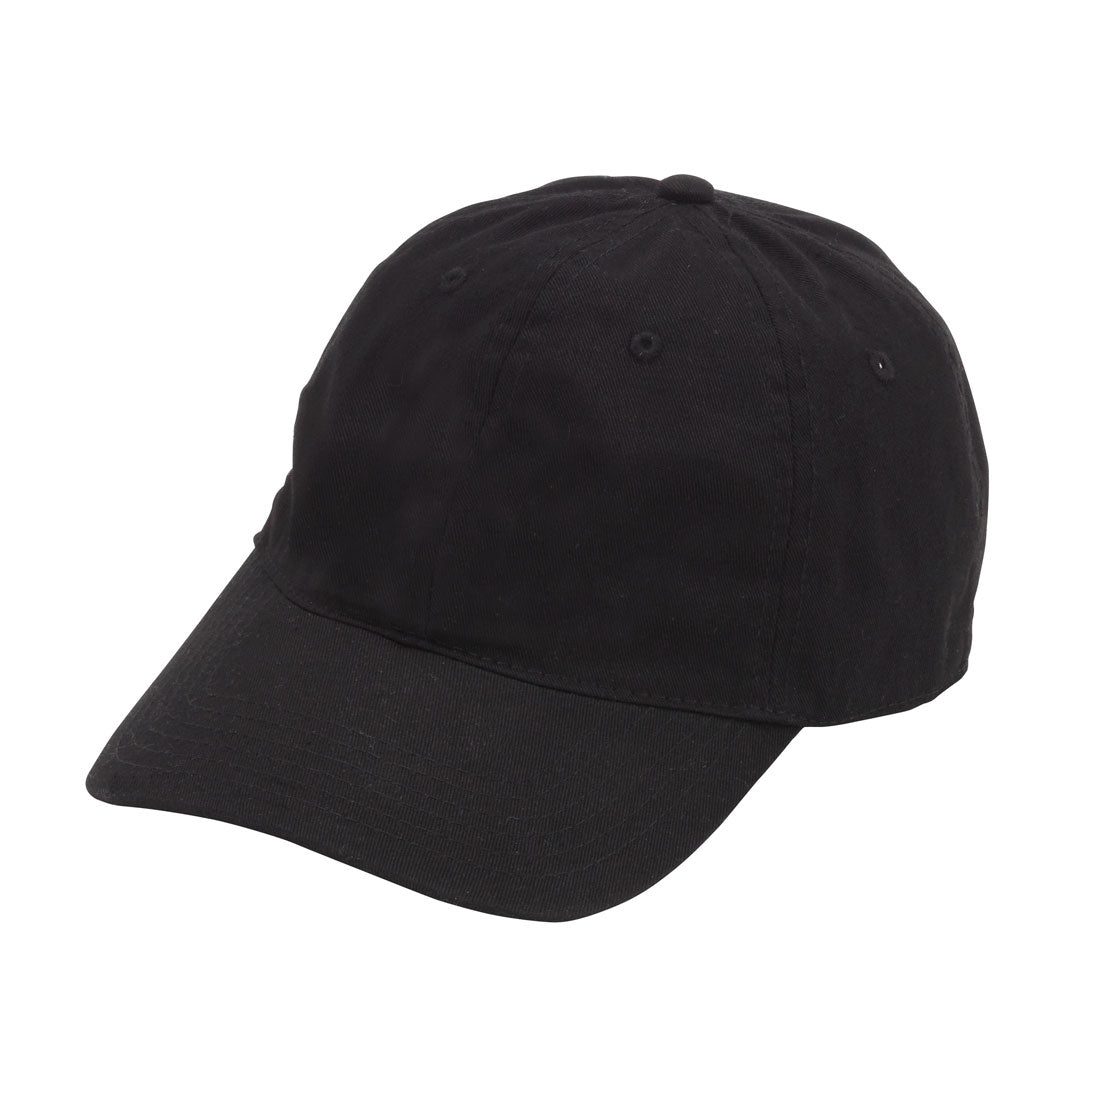 Black Monogram Cotton Blend Cap